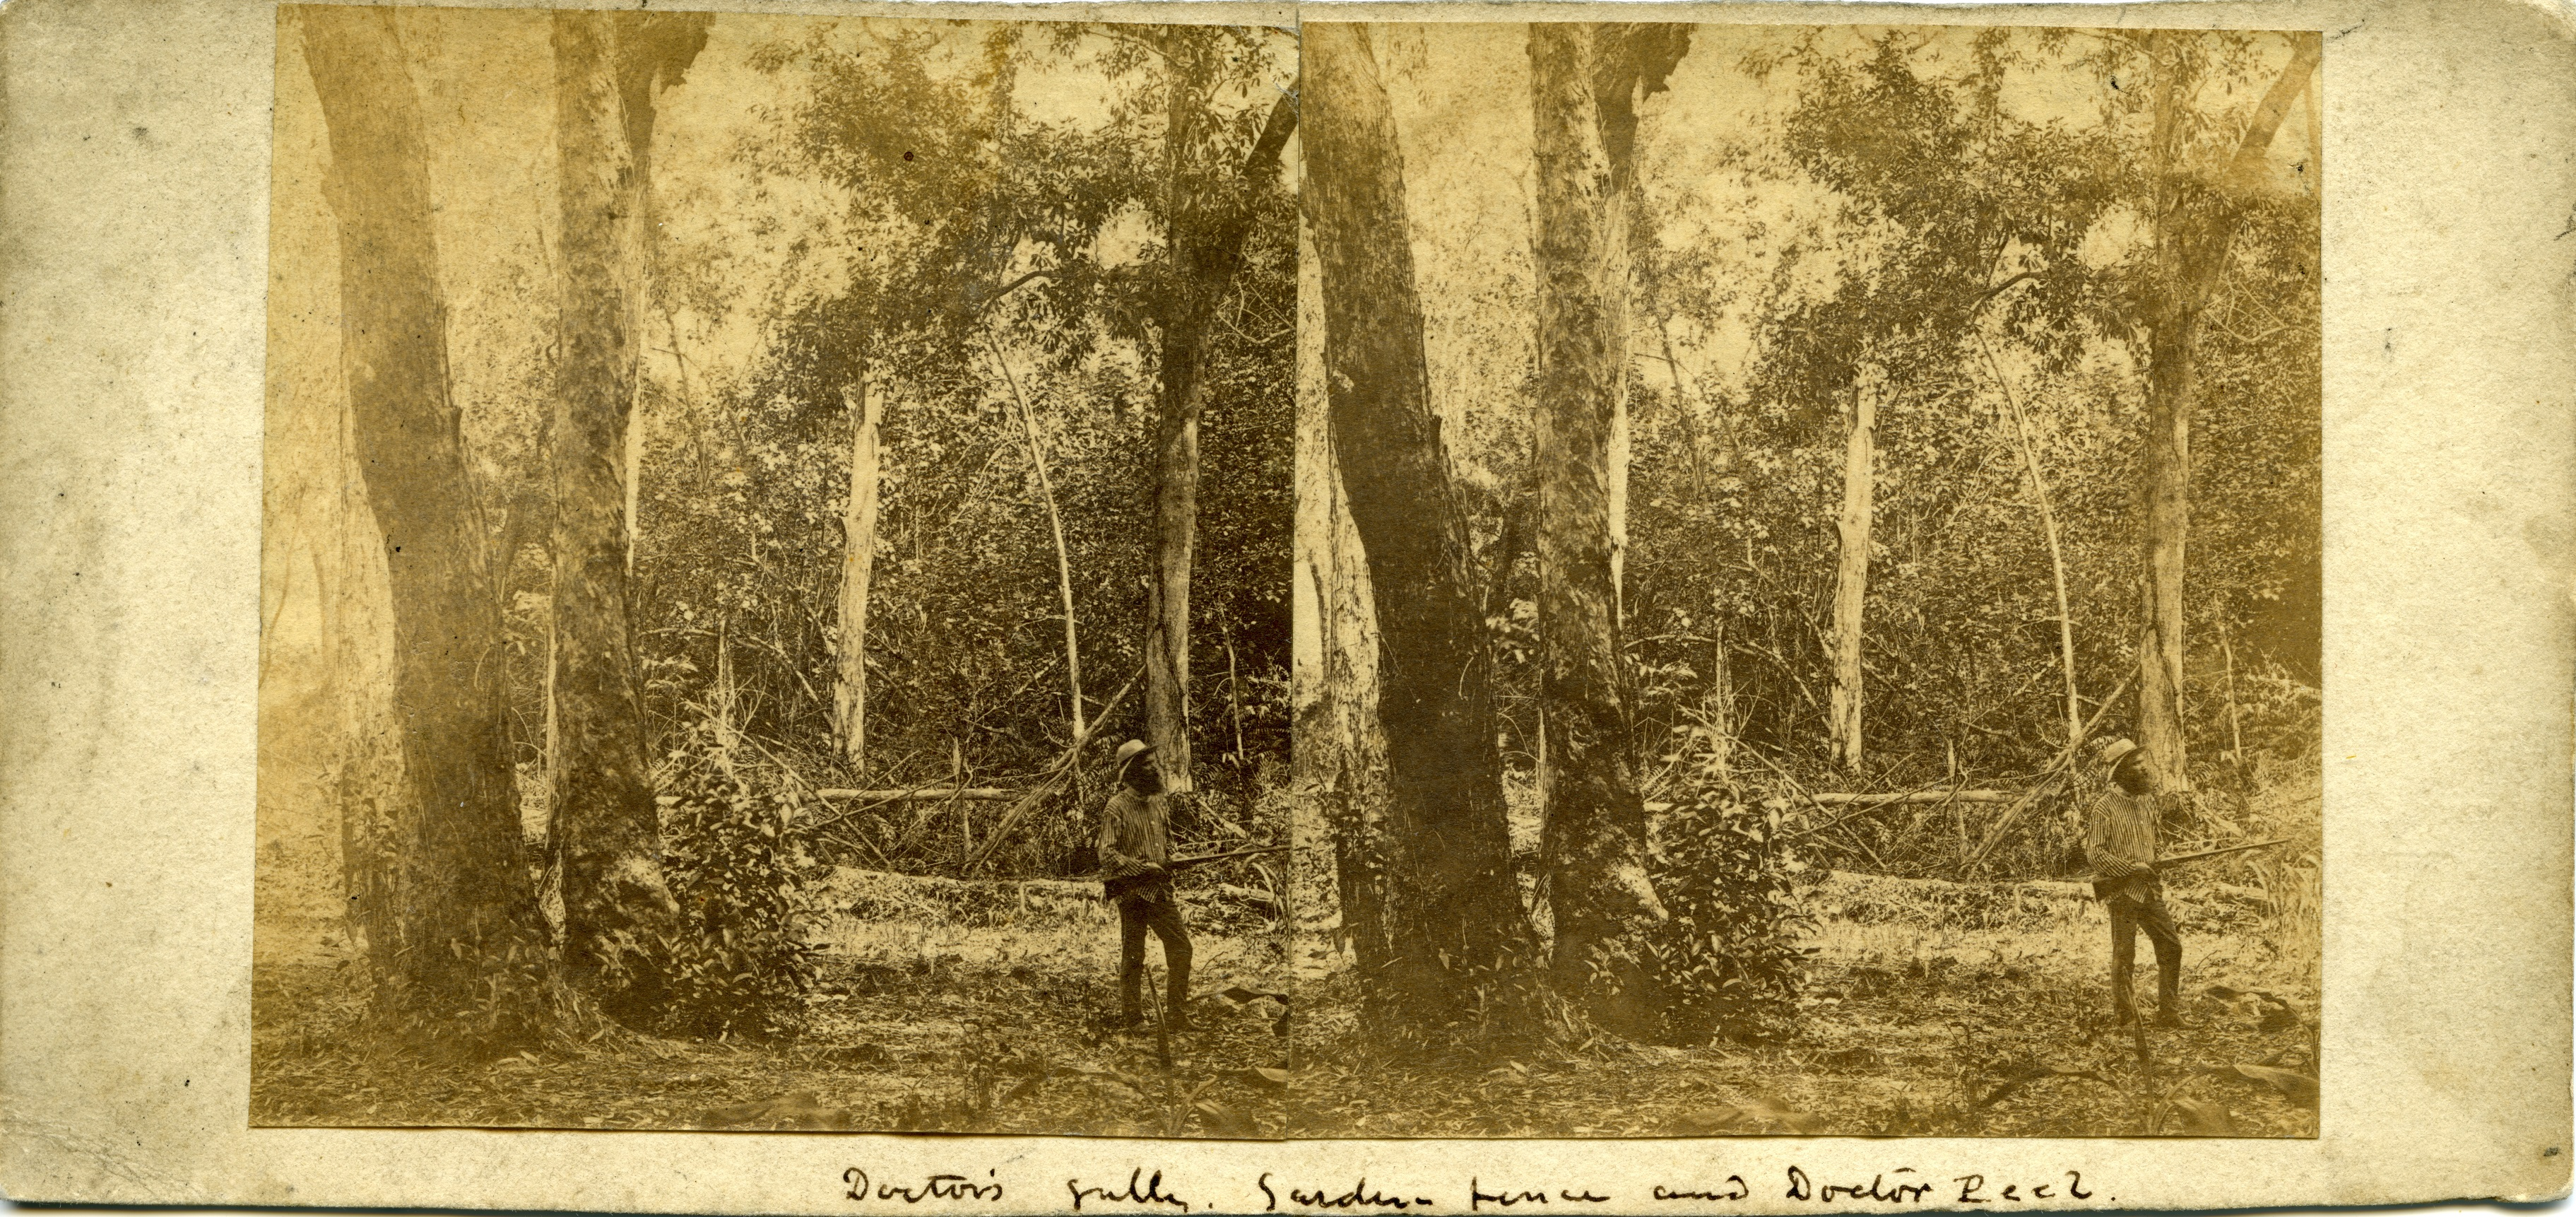 Stereoscopic image of Doctor Peel at Doctor's Gully Garden, 1869